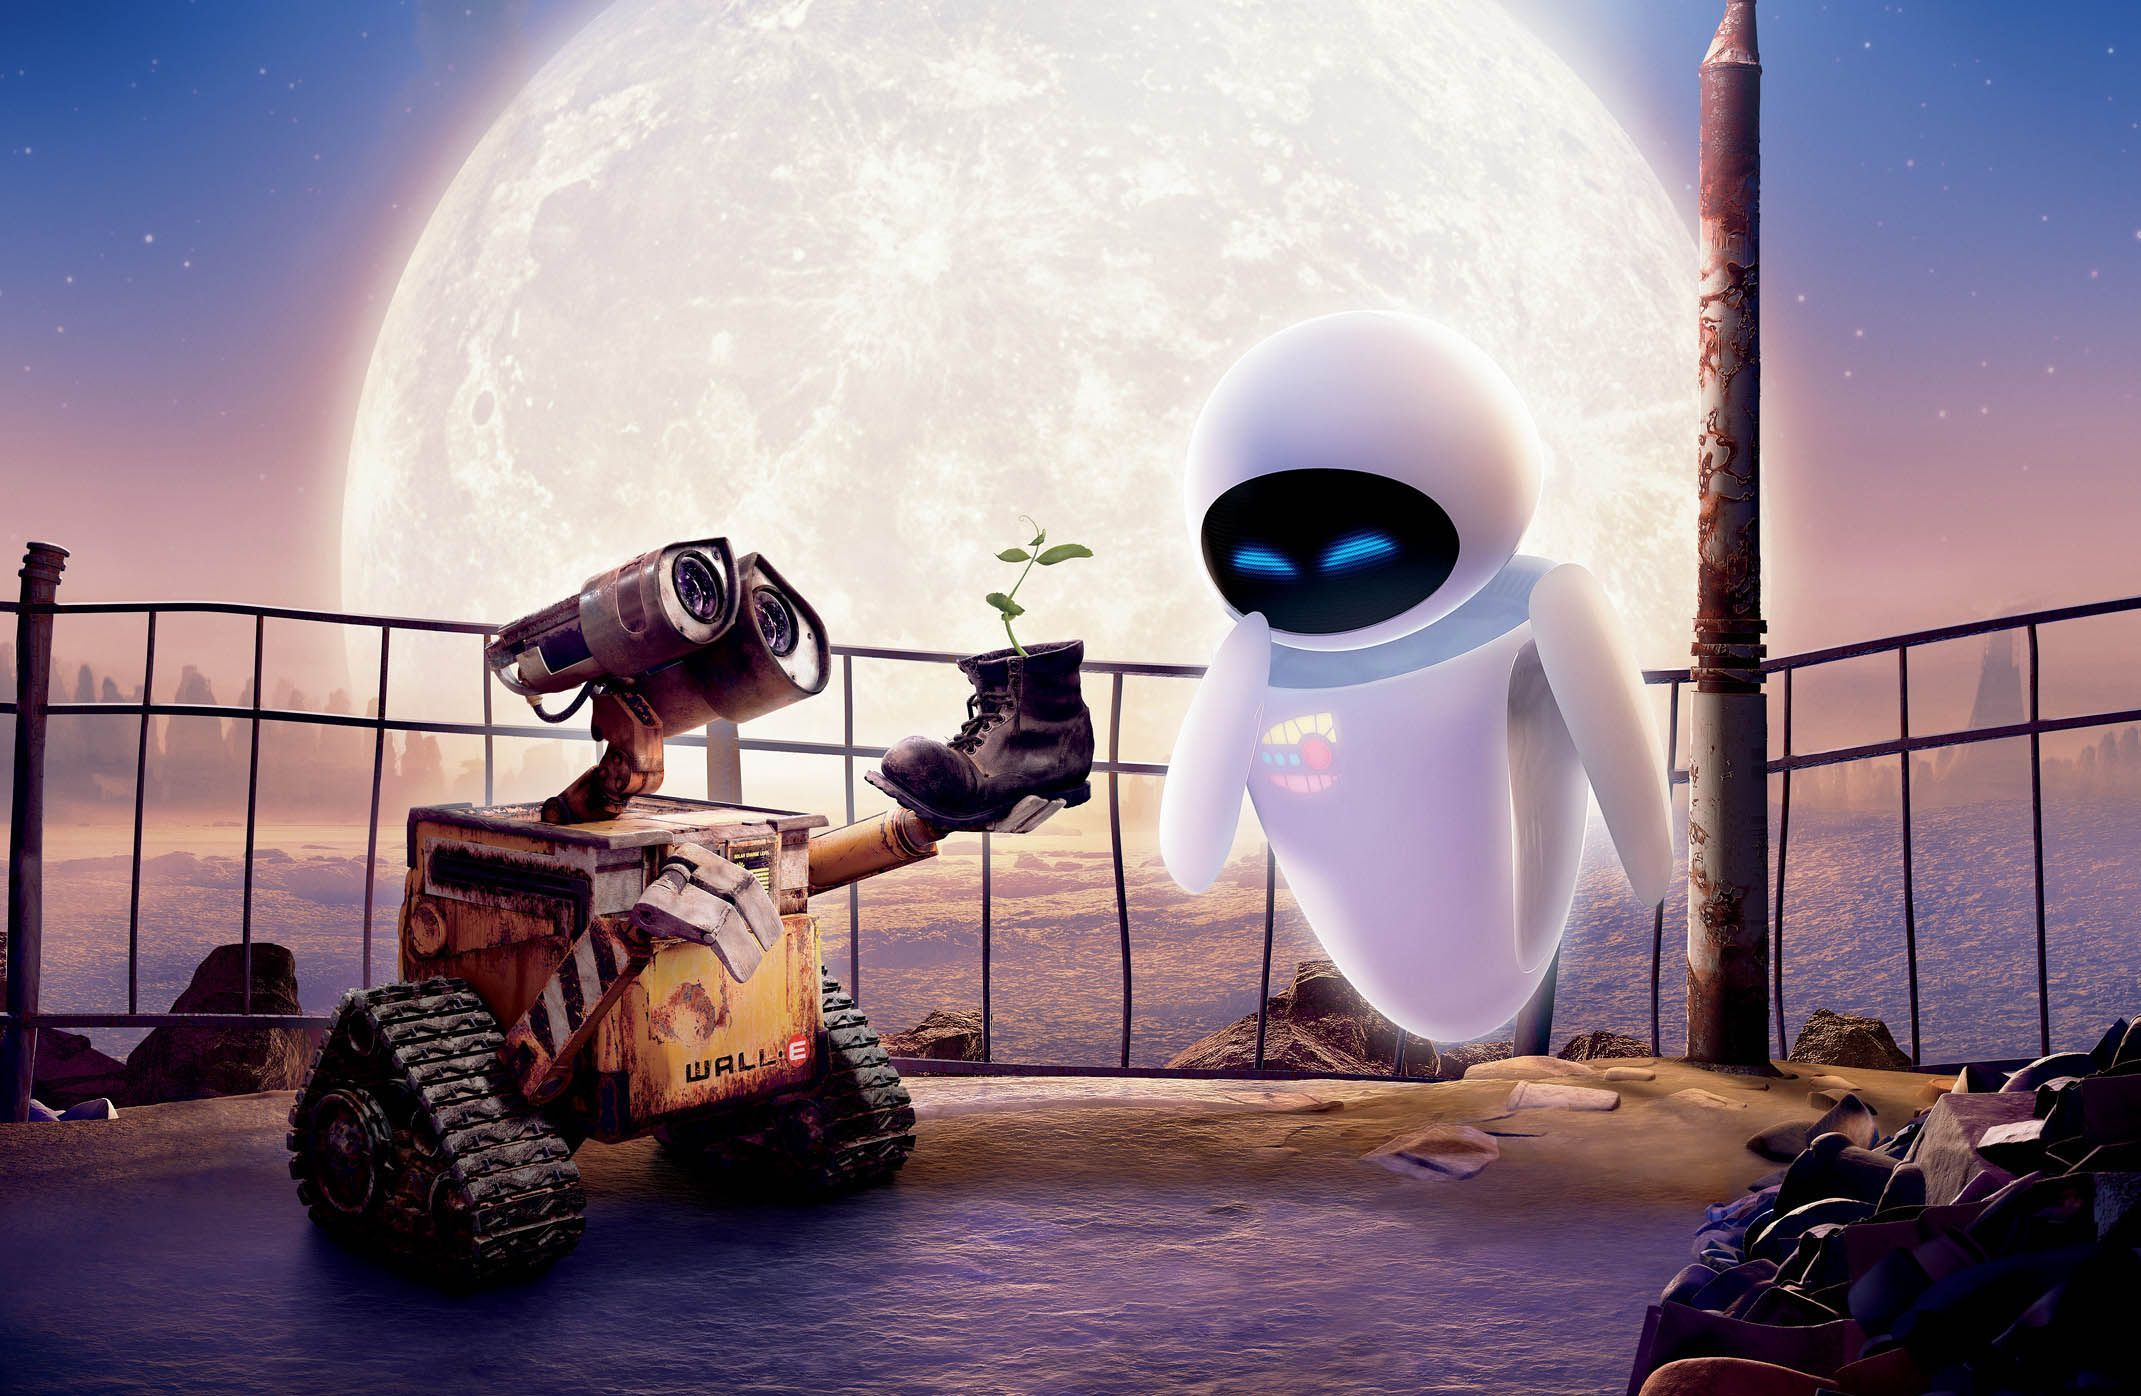 pictures of wall-e